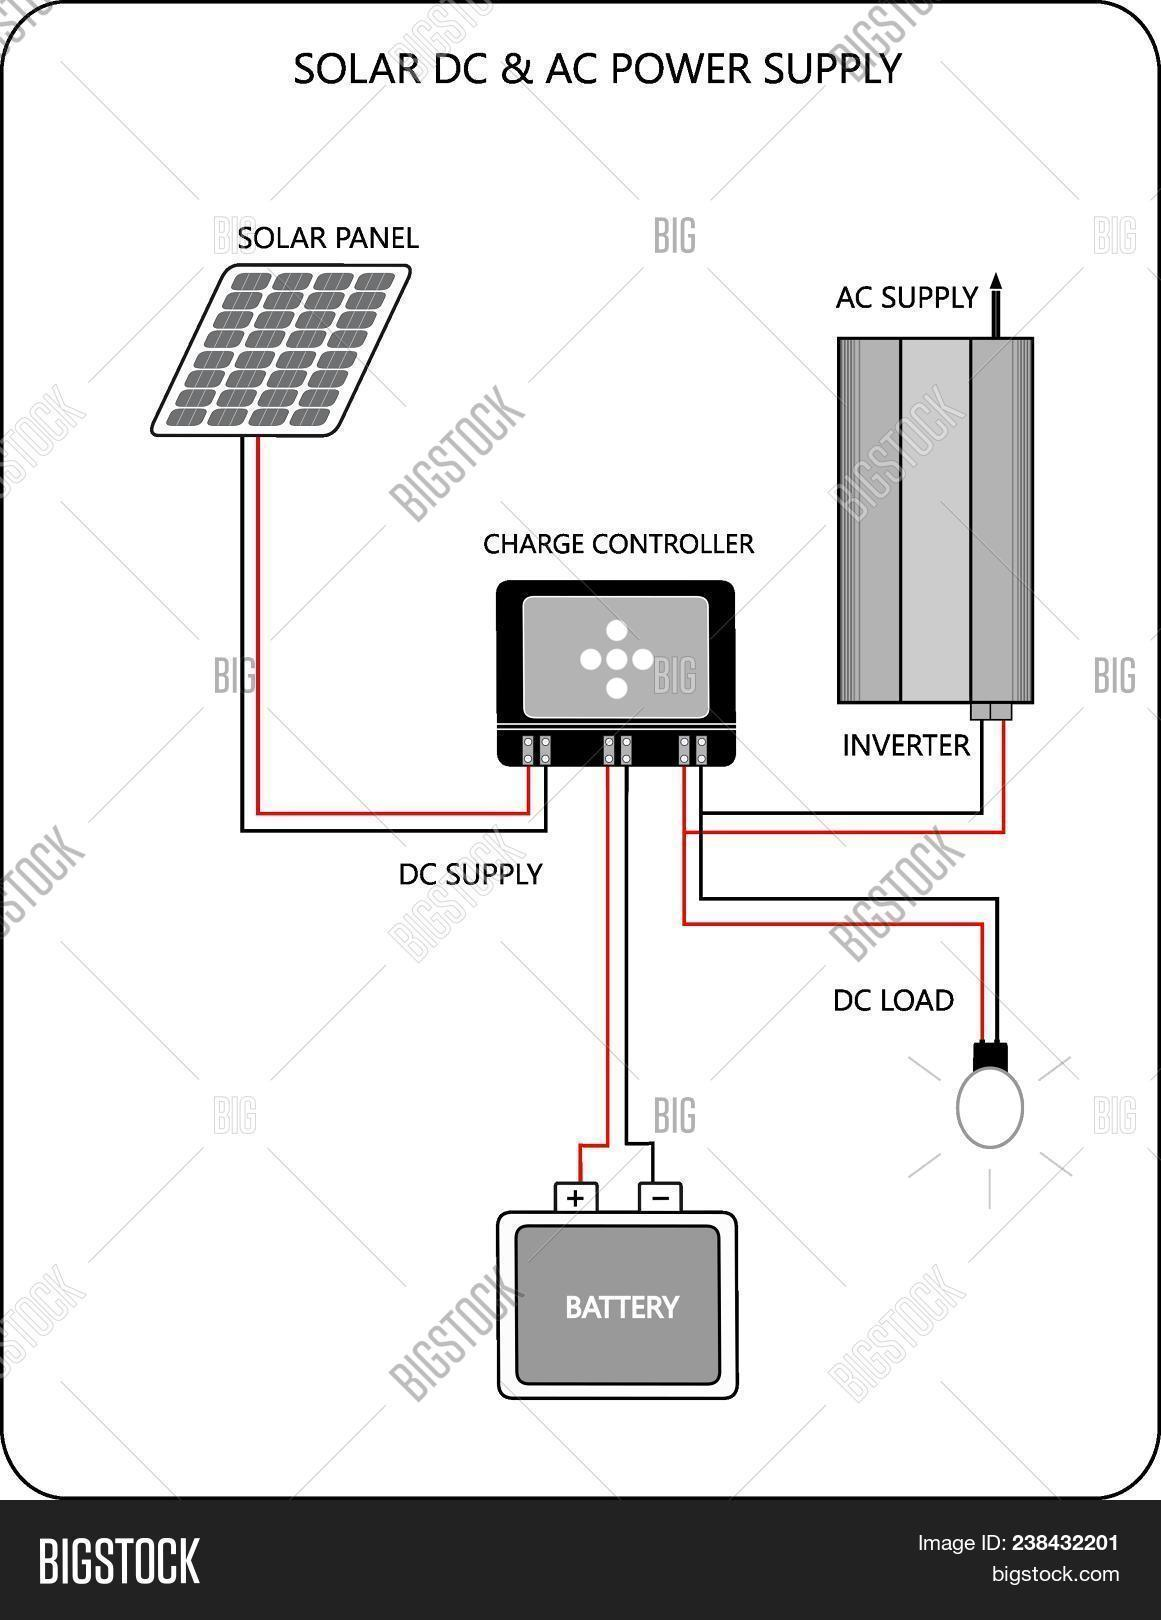 Ac To Dc Power Supply Circuit Schematic Electrical Wiring Diagrams Solar Image Photo Free Trial Bigstock 120vac